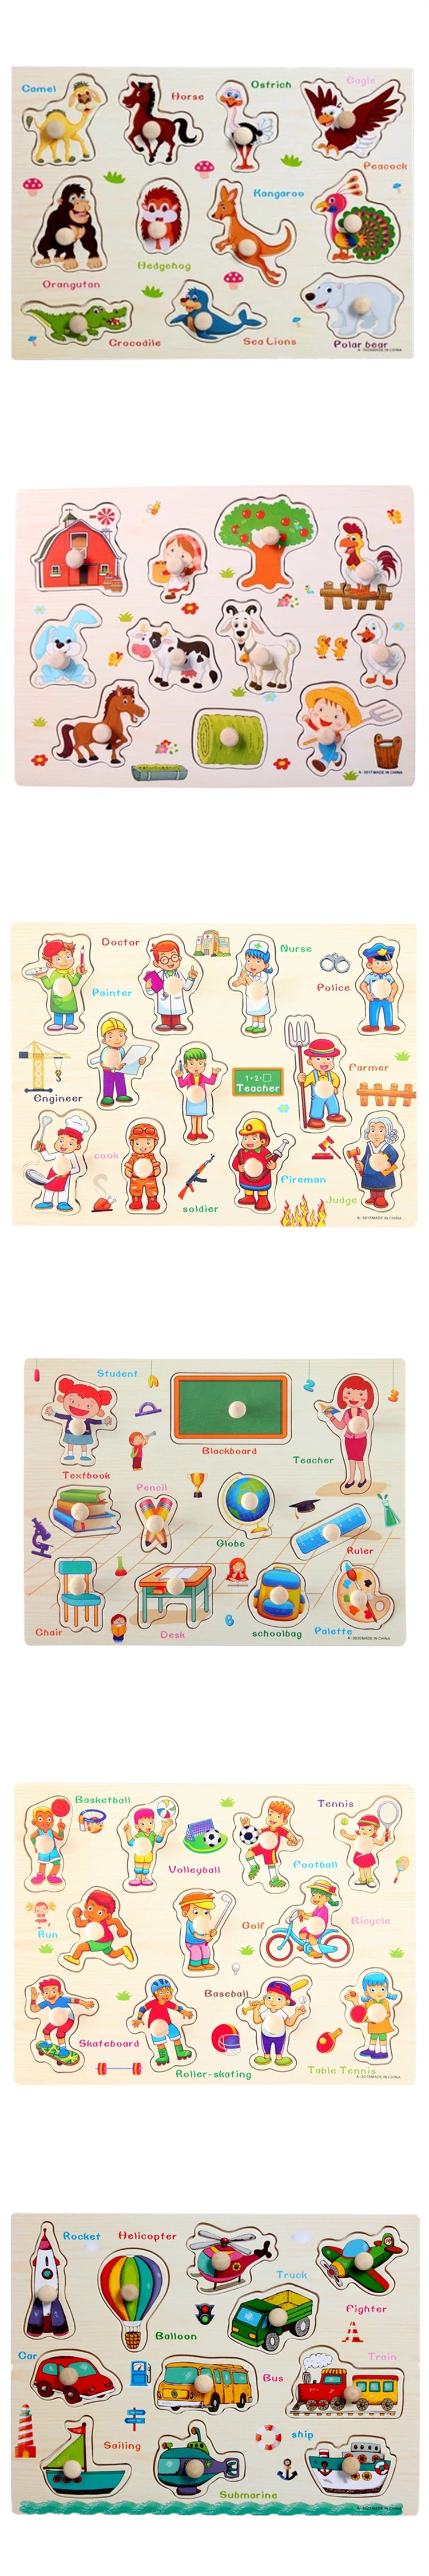 Little B House 1 pcs Preschool Educational Wooden Puzzle Toy Wooden Toy -BT43-School